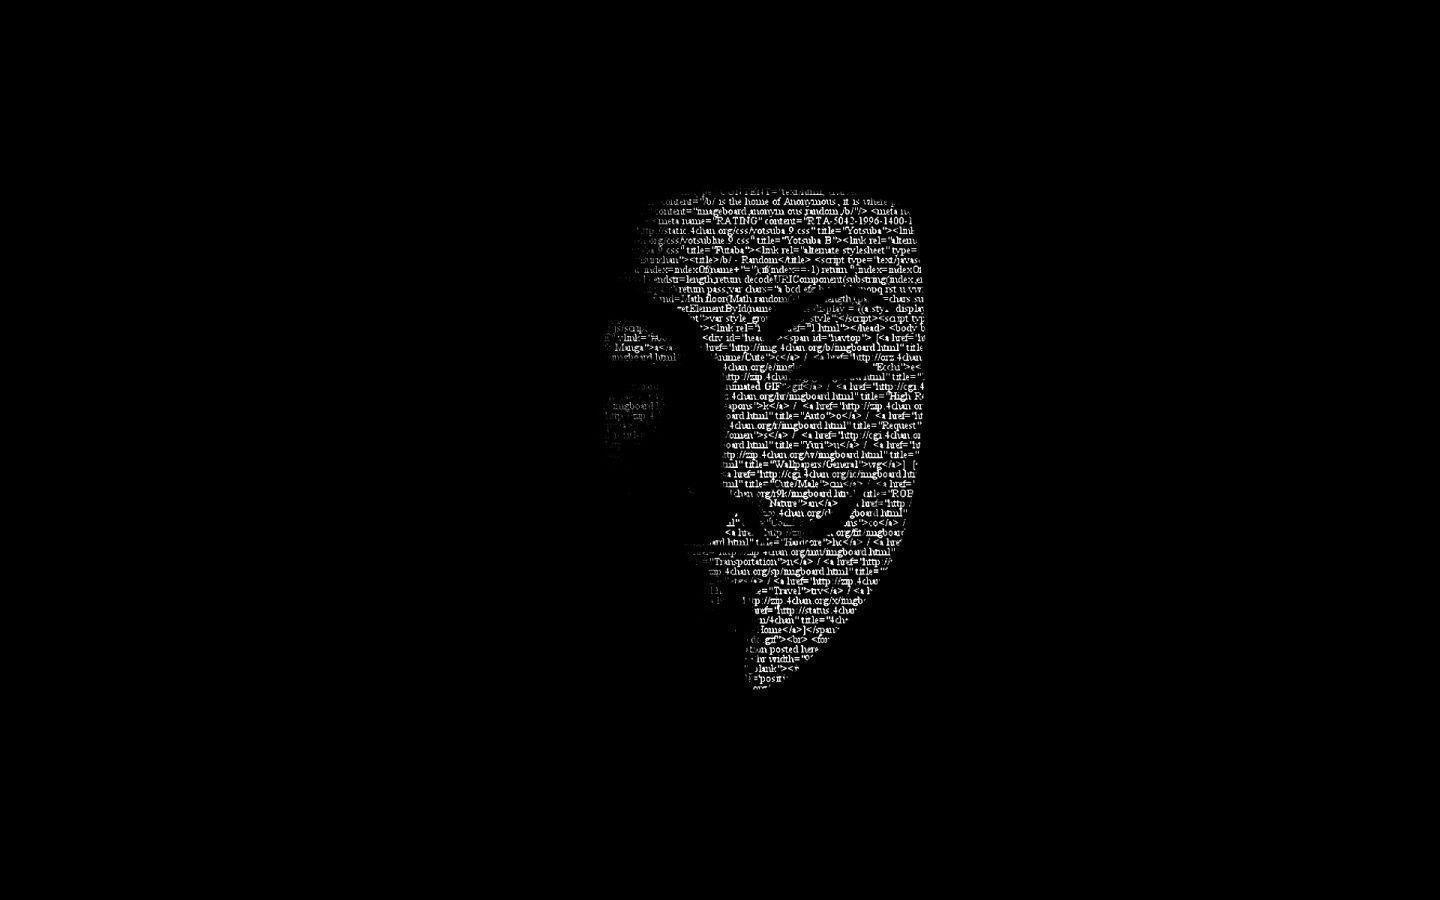 1440x900 Guy Fawkes Mask Code desktop PC and Mac wallpapers